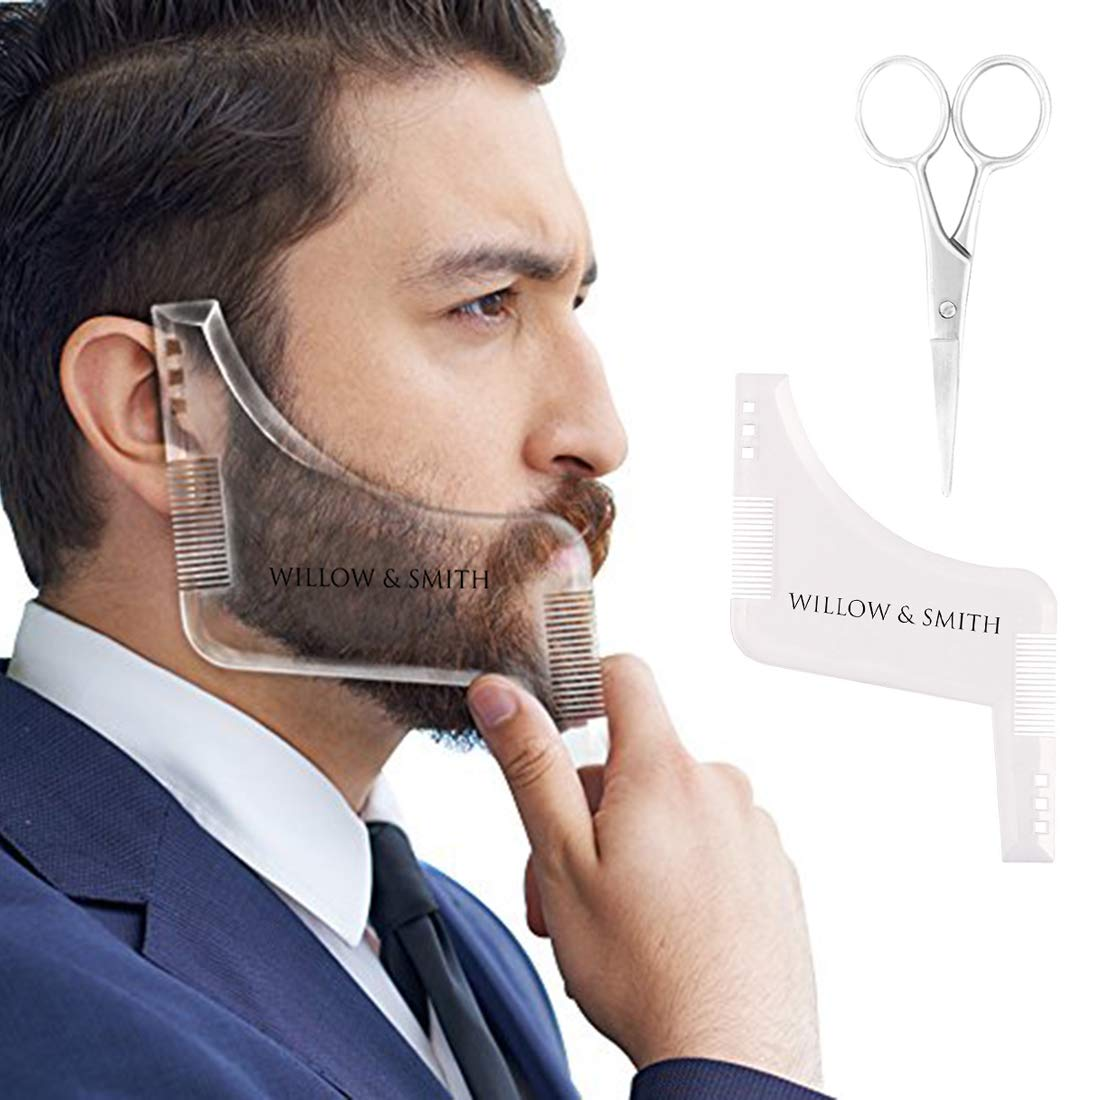 Willow & Smith Beard Shaping Template Plus Beard Comb With